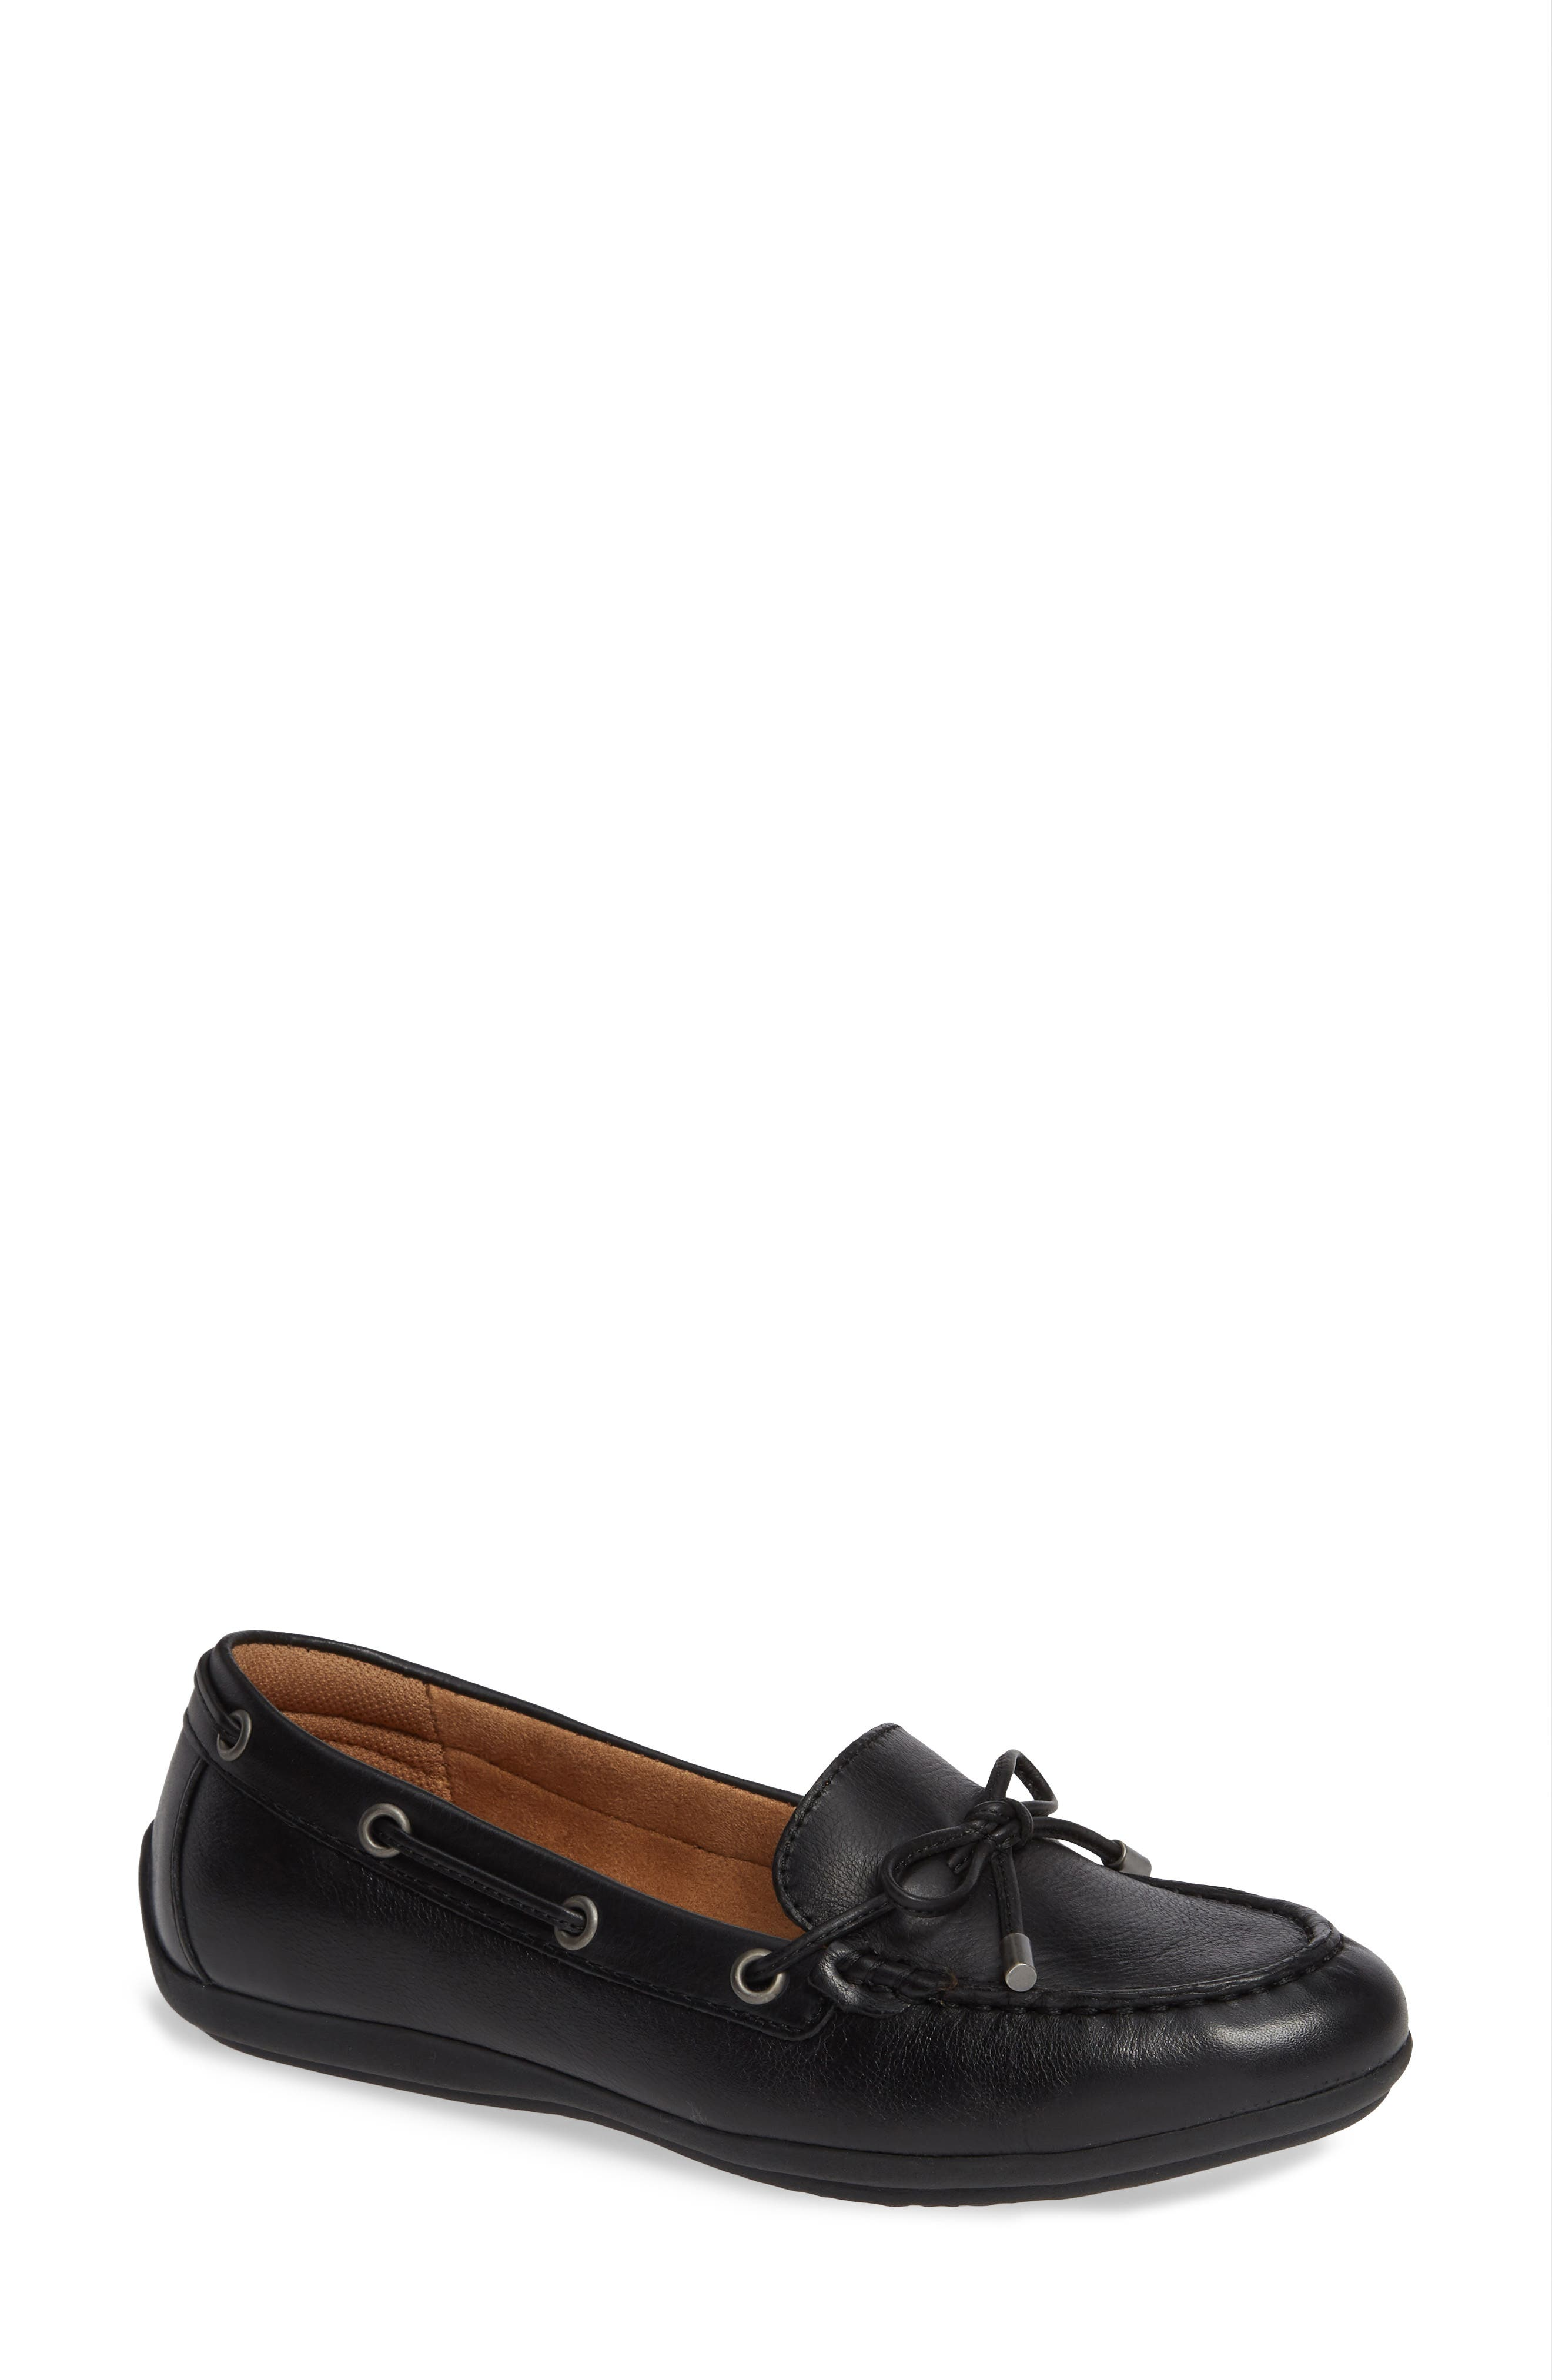 Mindy Loafer,                             Main thumbnail 1, color,                             BLACK